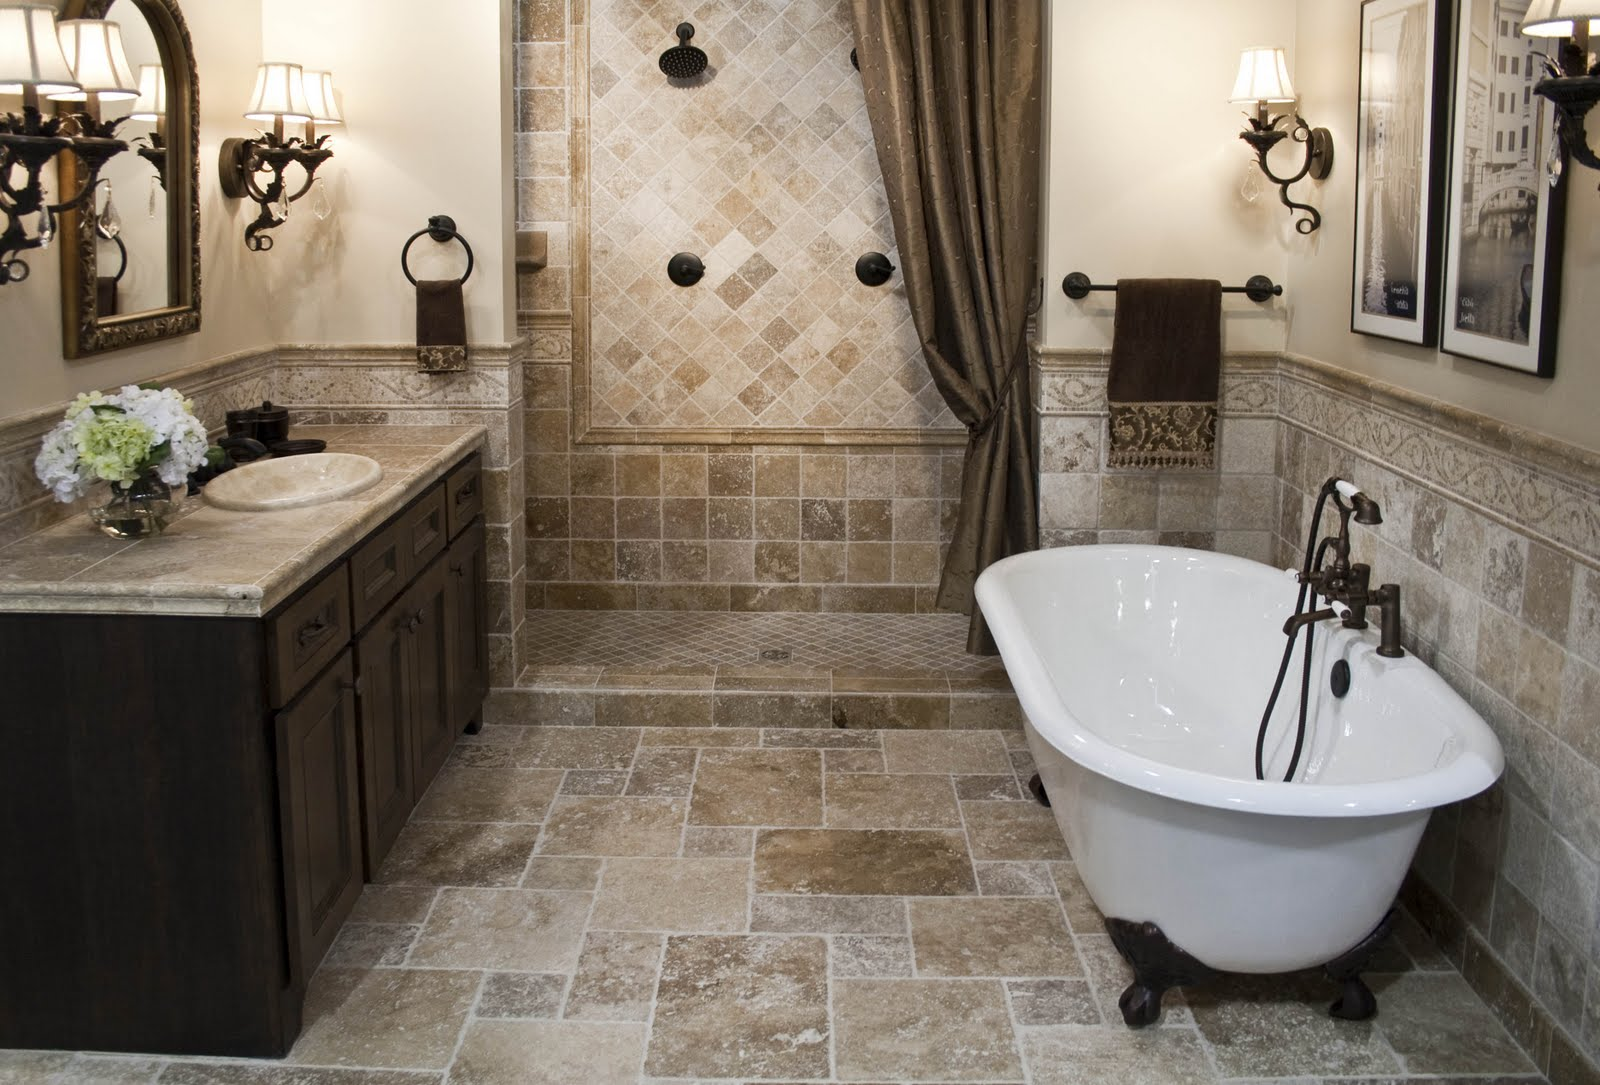 Tips For DIY Bathroom Renovations On A Budget - How to remodel a bathroom yourself on a budget